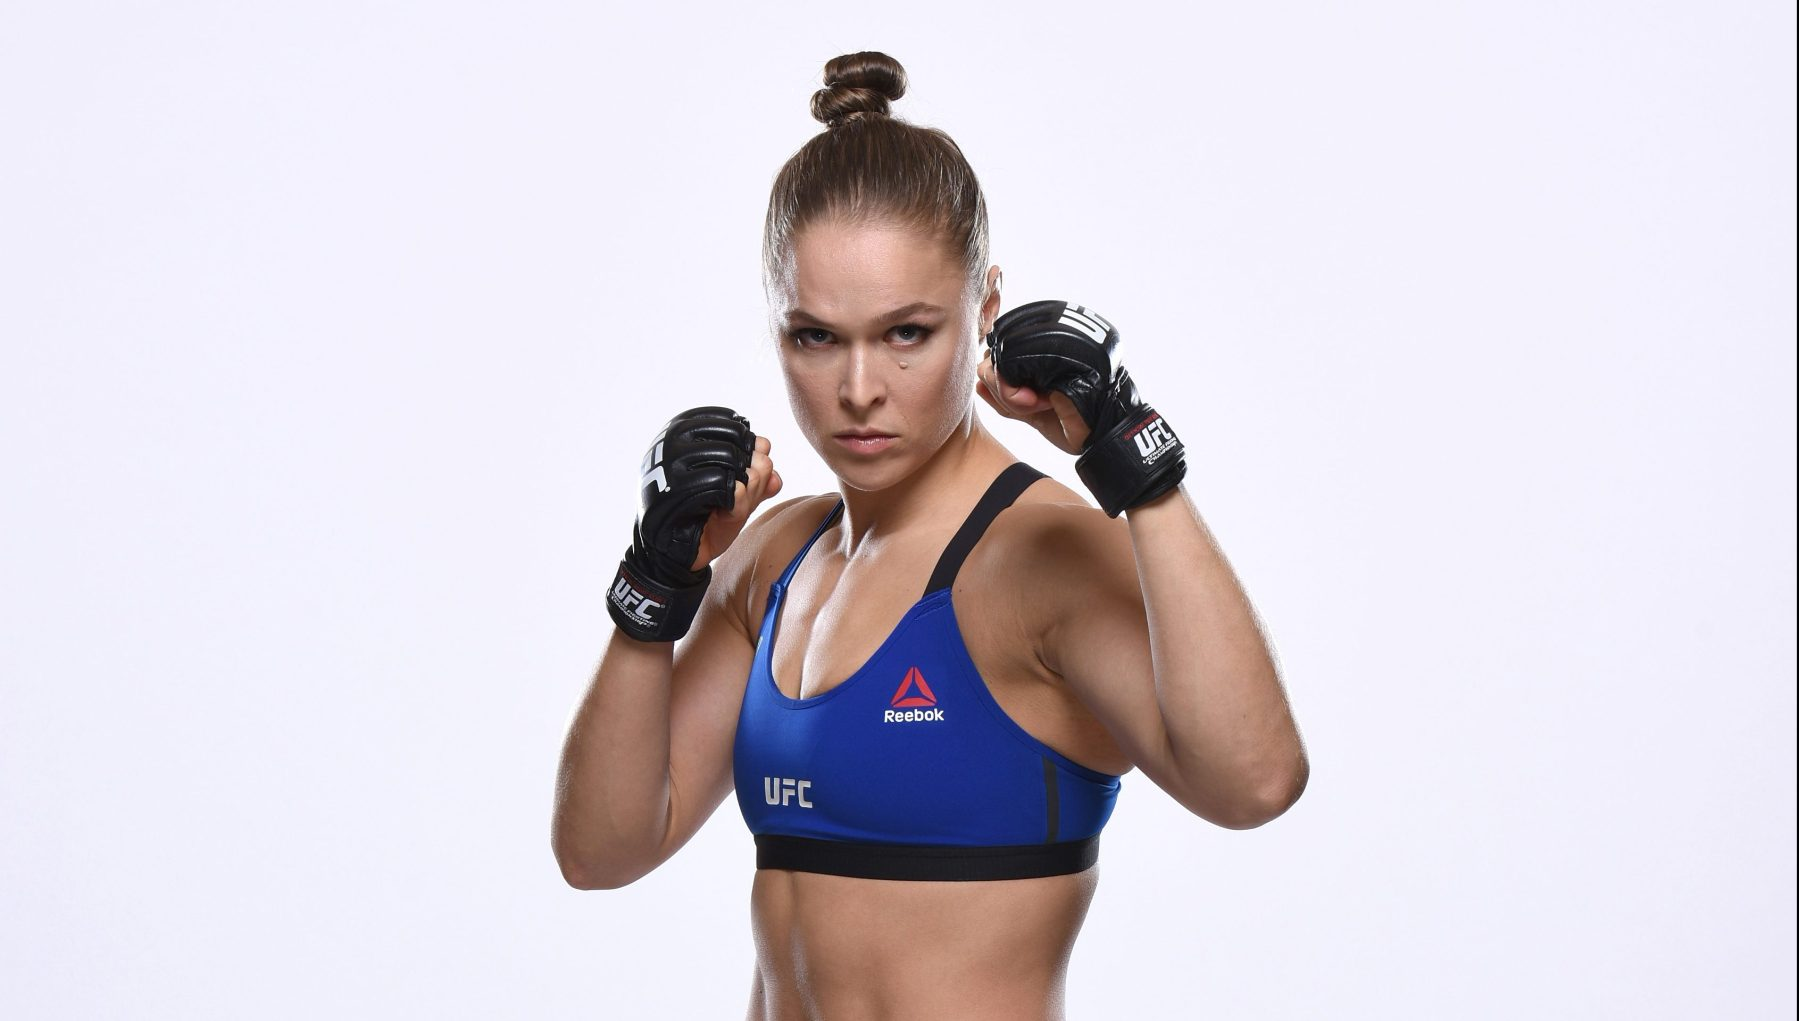 Ronda Rousey poses for a portrait during a UFC photo session inside the MGM Grand Conference Center on December 26, 2016 in Las Vegas, Nevada. (Photo by Jeff Bottari/Zuffa LLC via Getty Images)